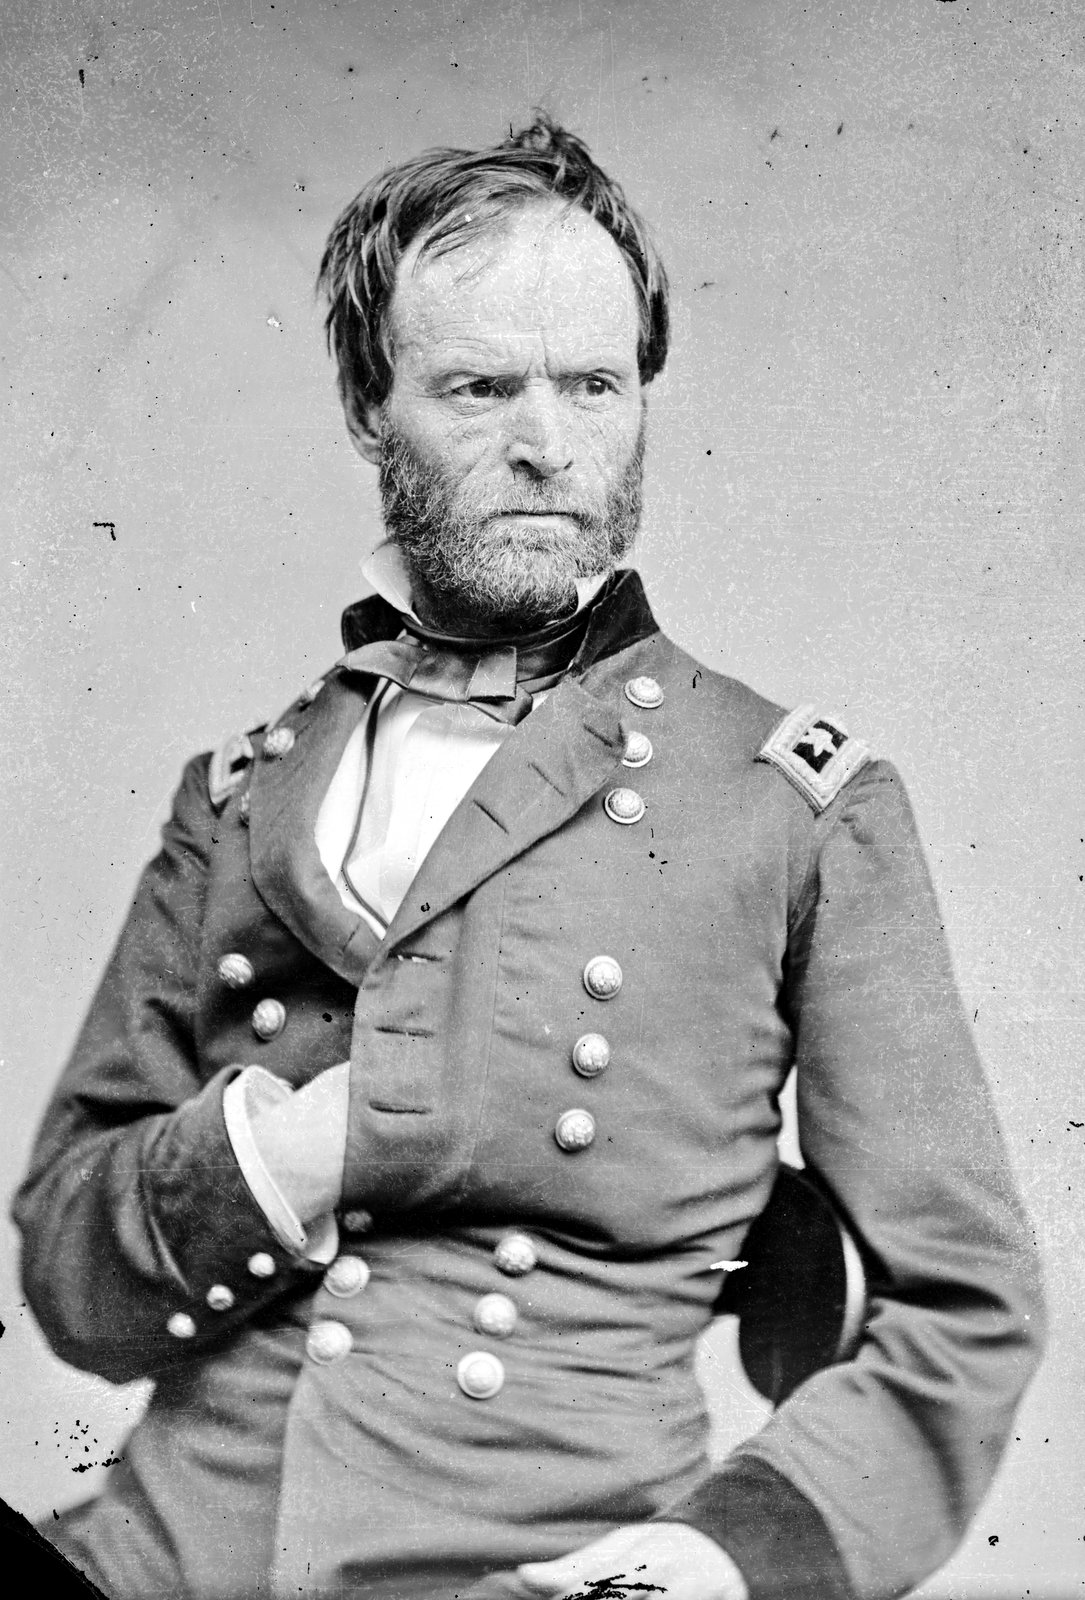 General William T Sherman - Civil War (1860s)